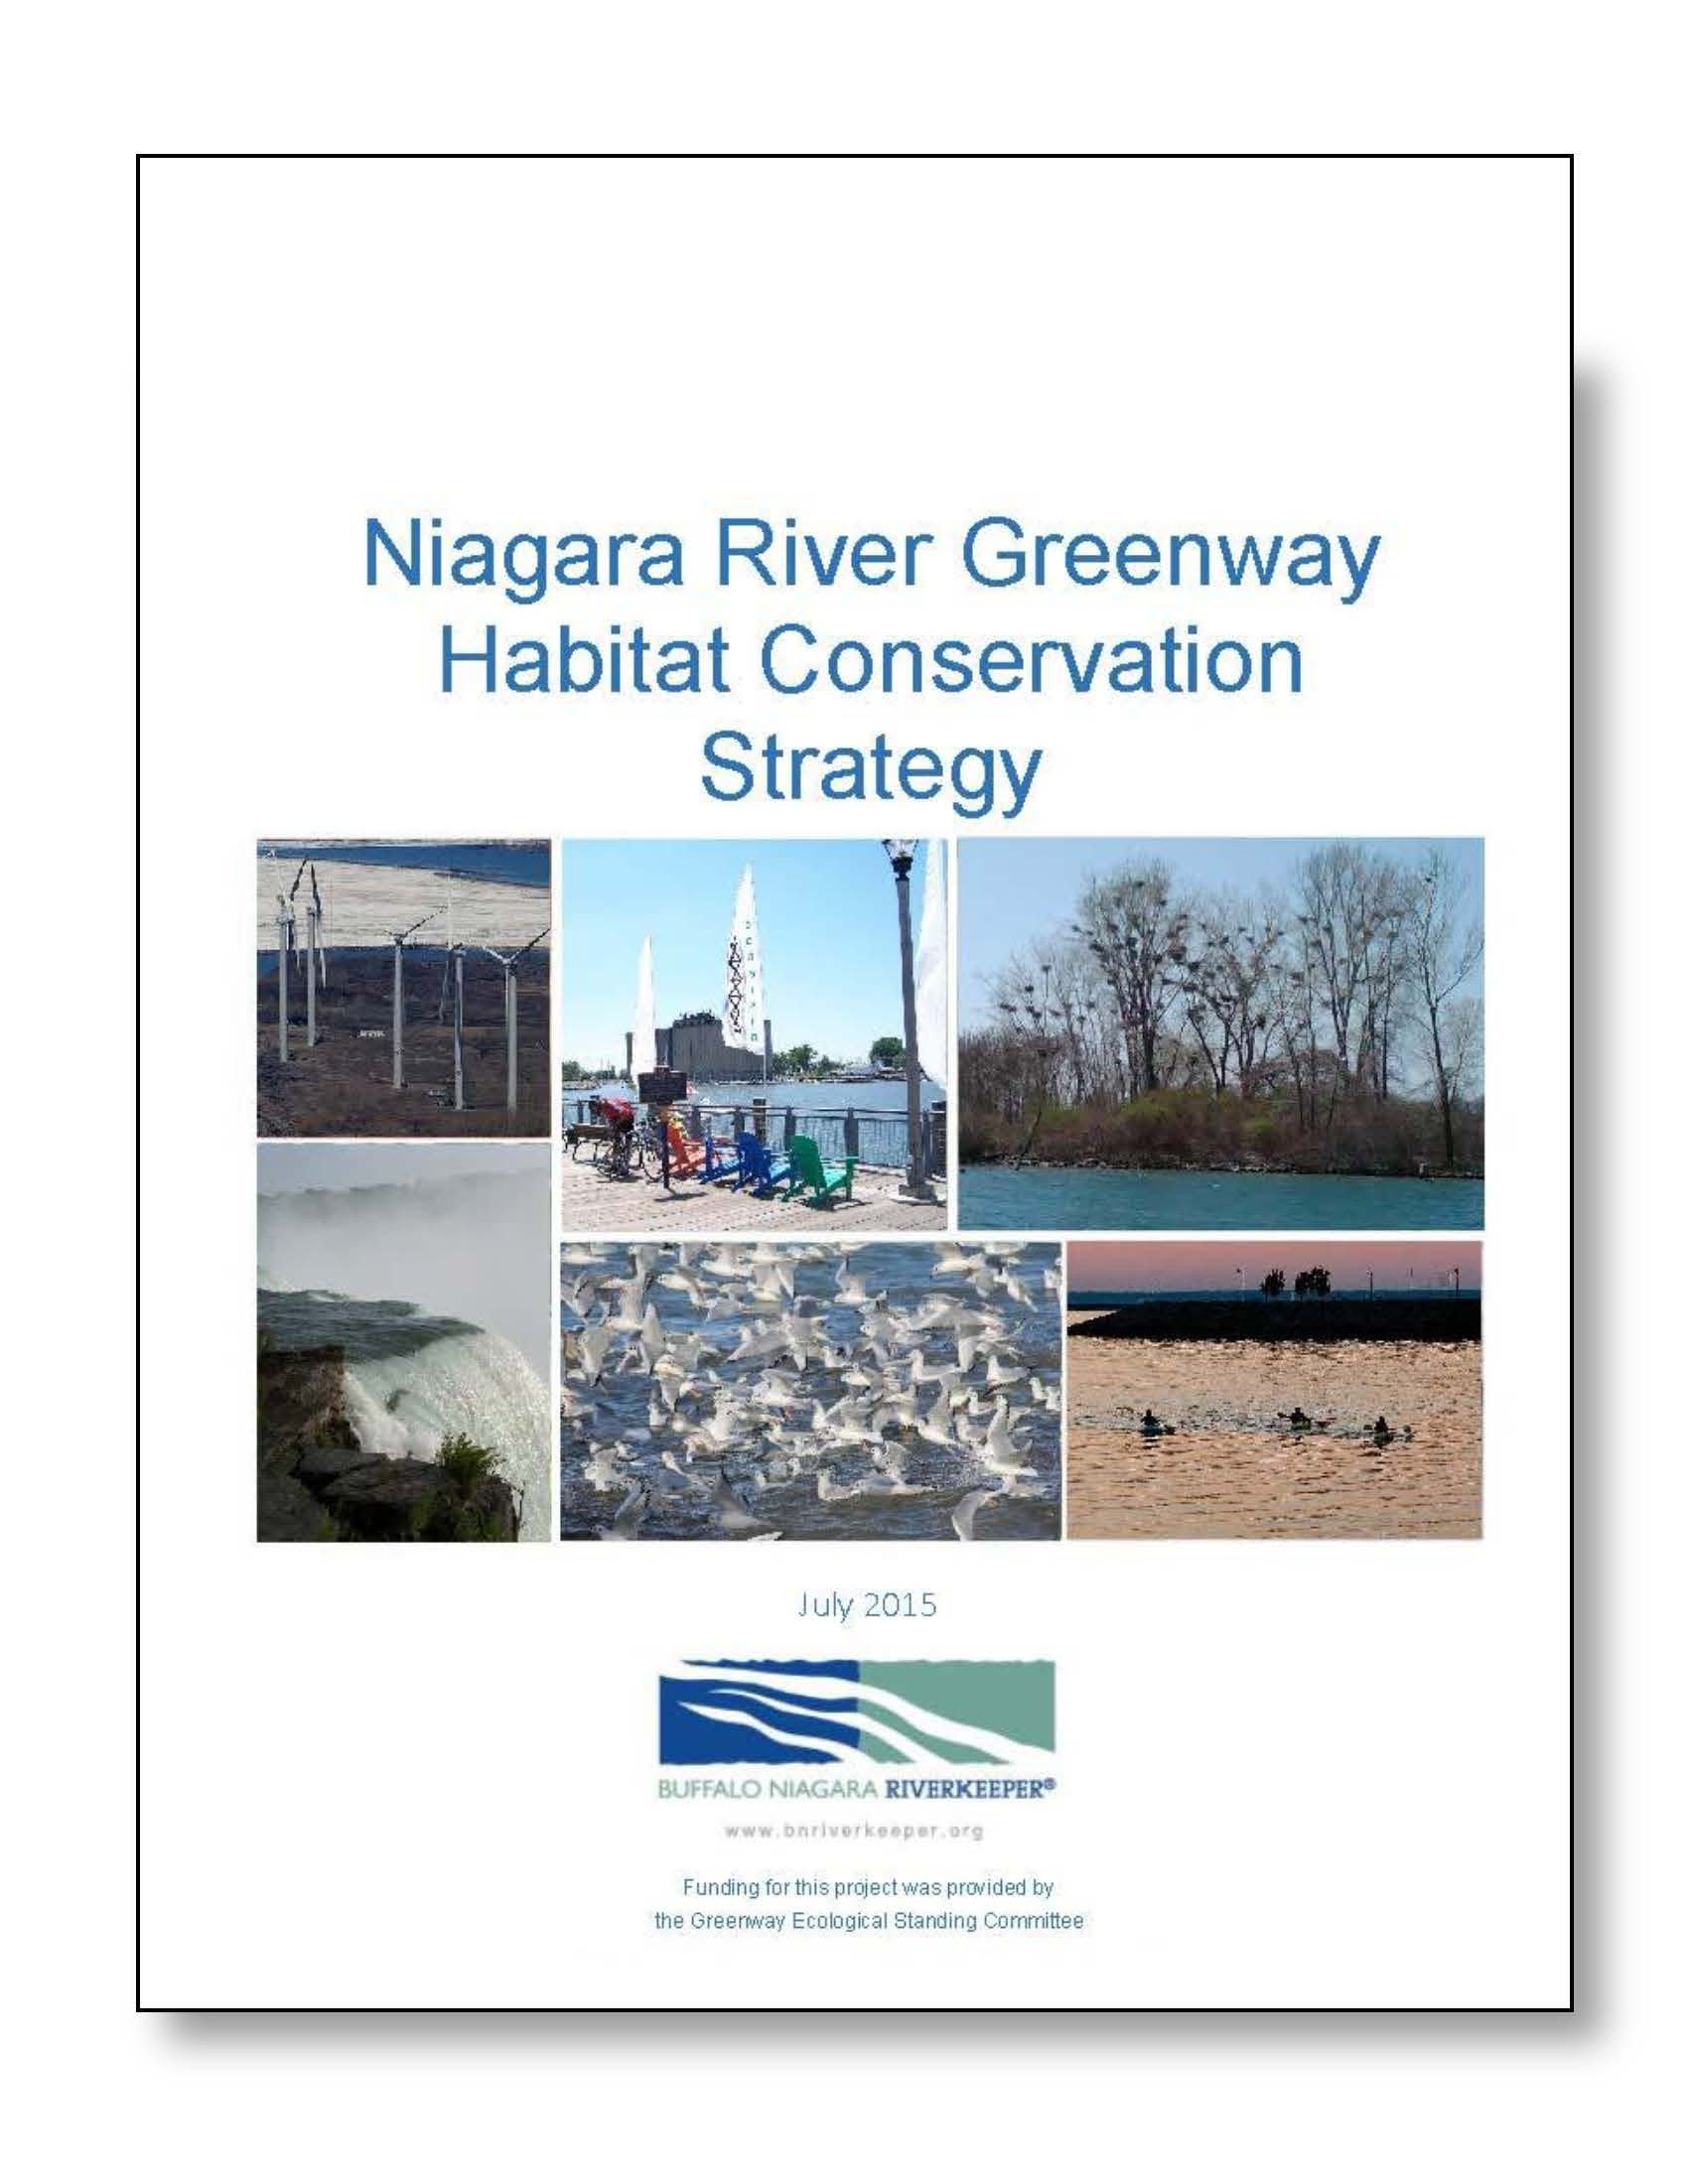 green way strategy outlined